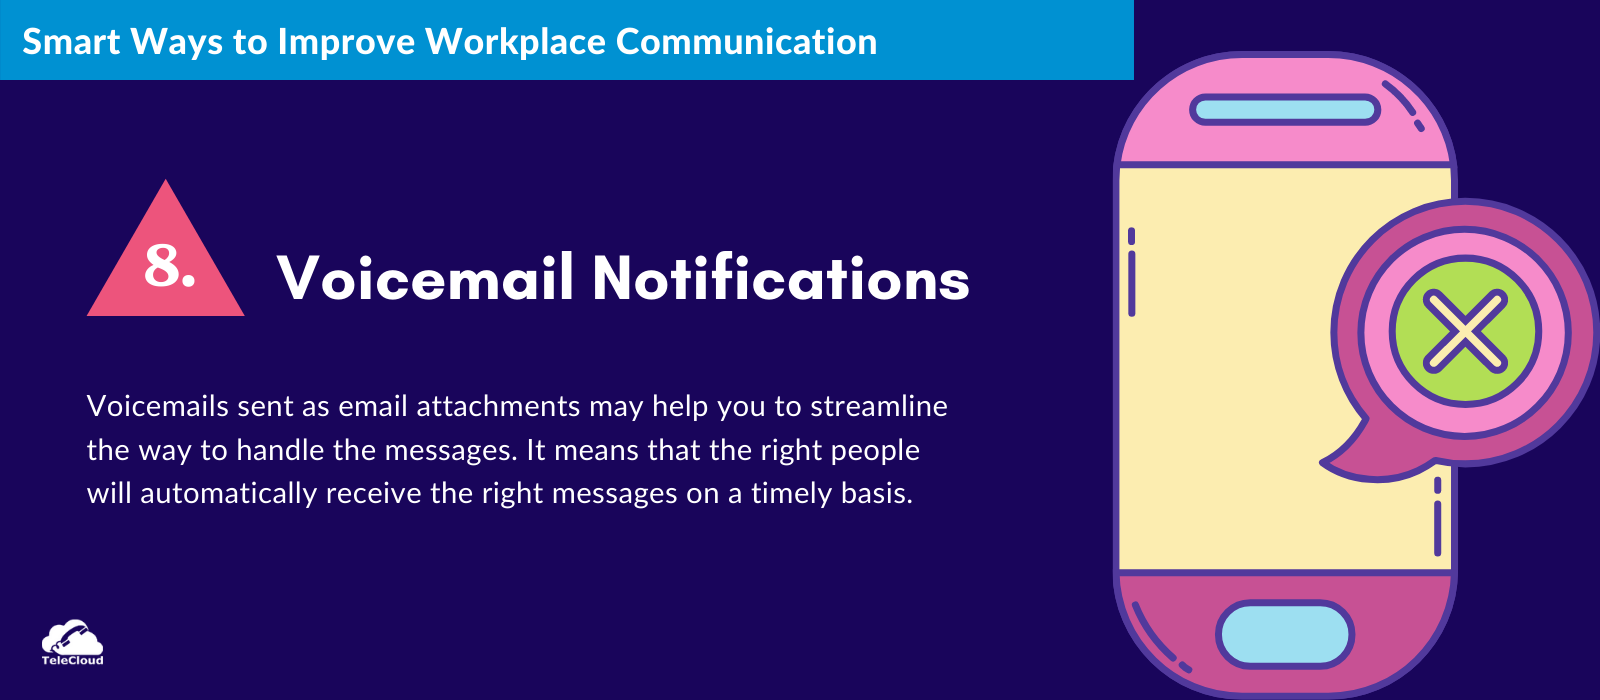 Voicemail Notifications to improve business communication - TeleCloud